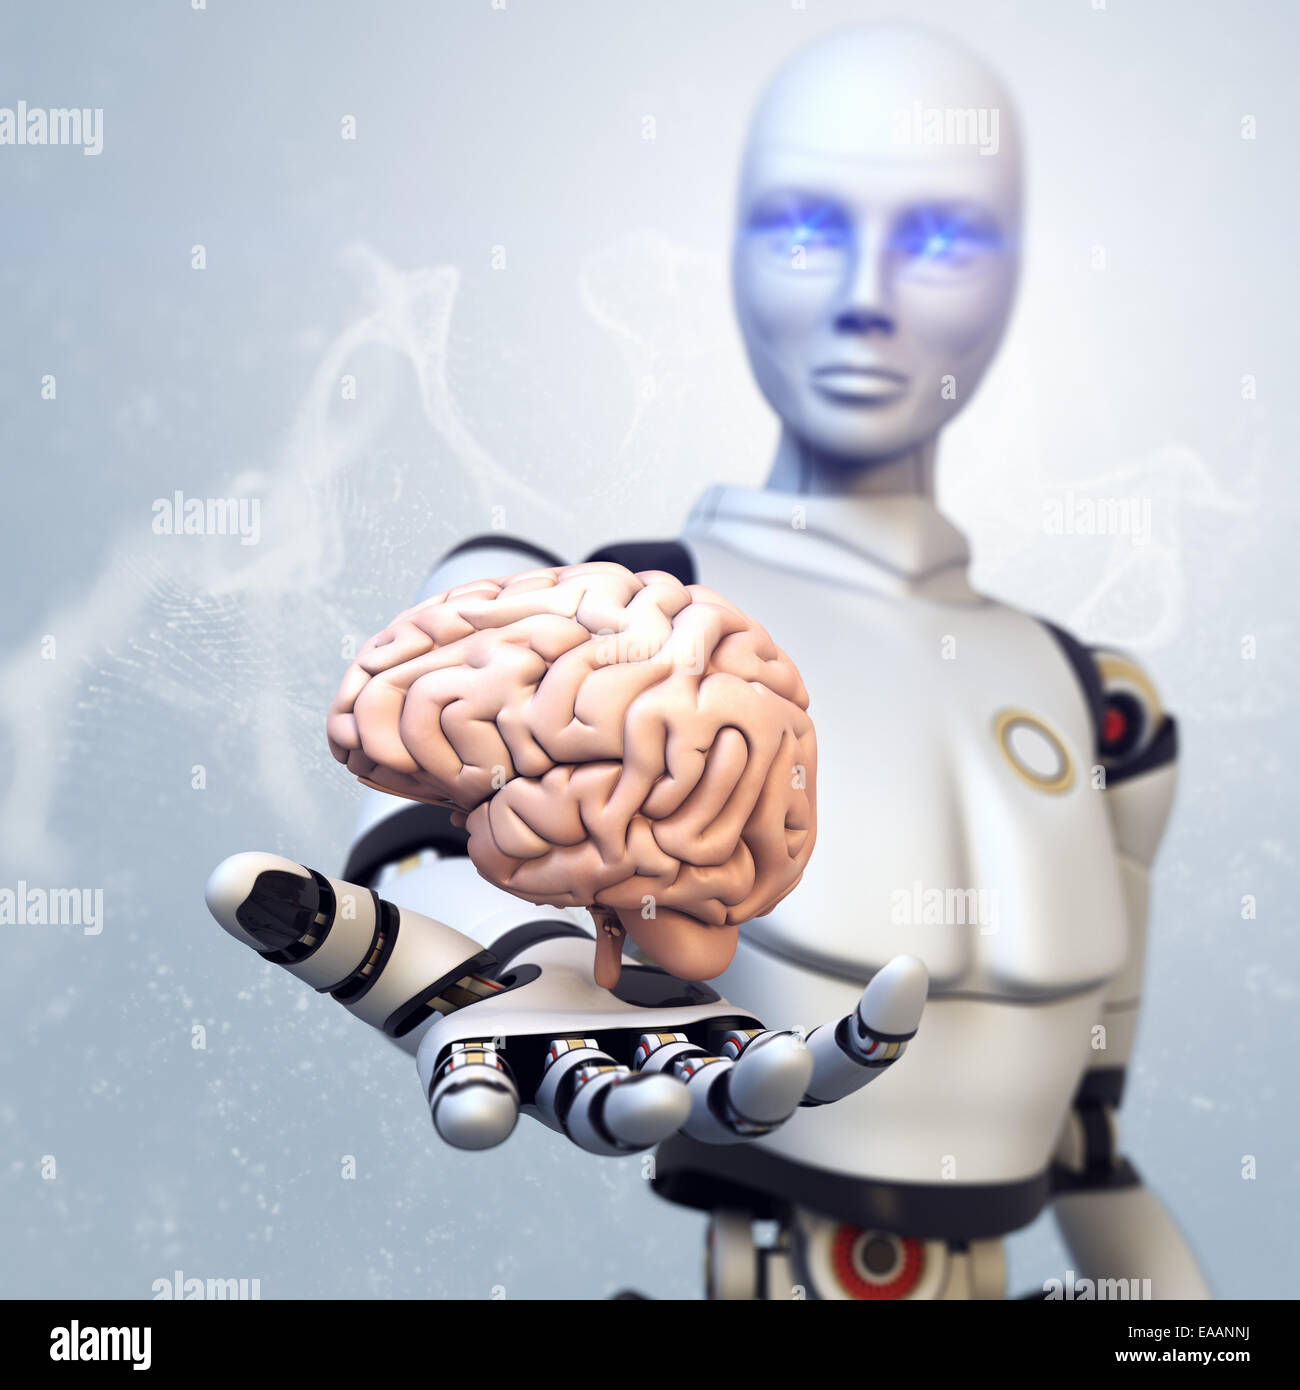 Robot is giving the brain - Stock Image